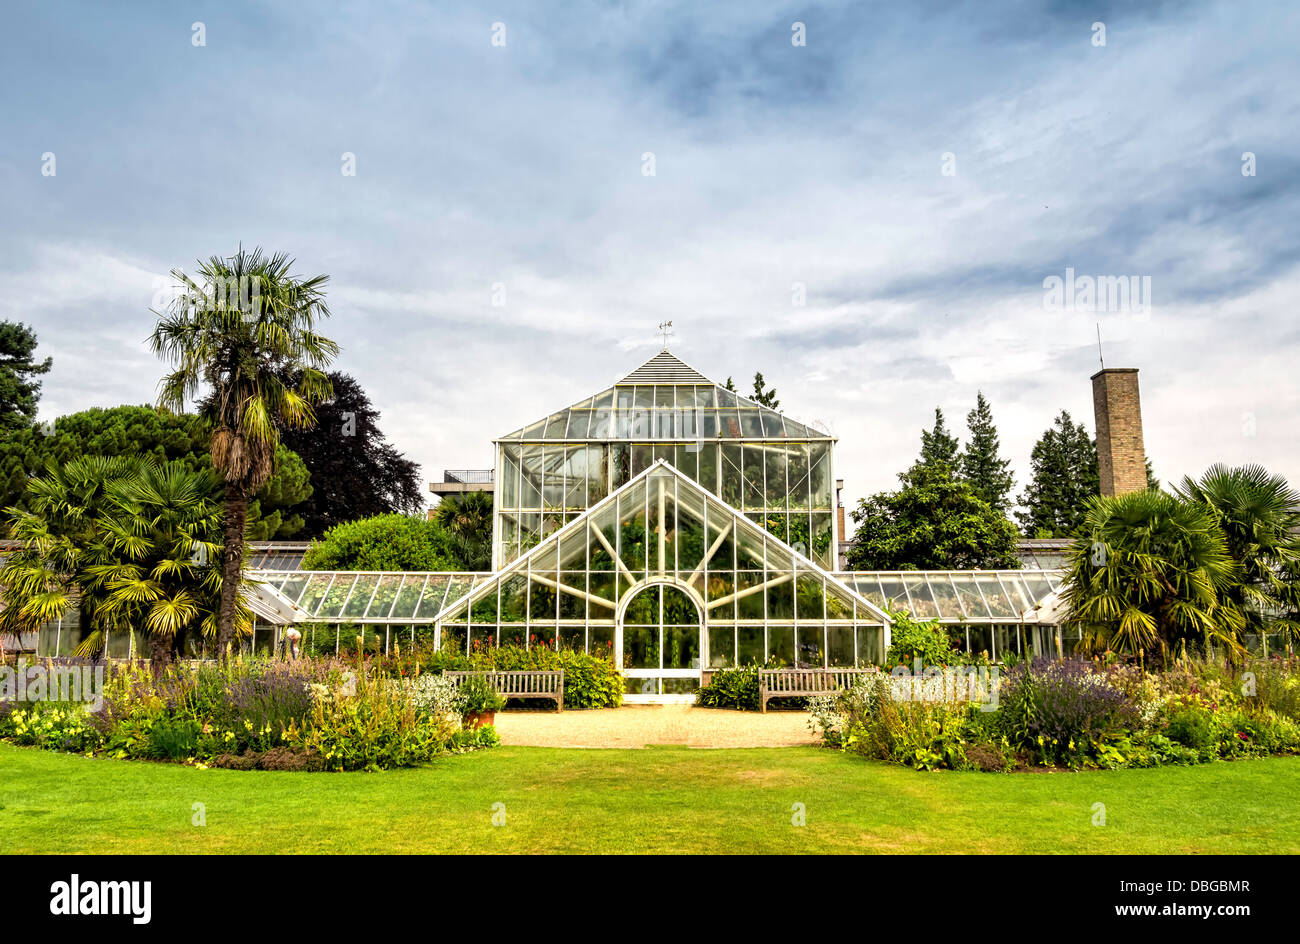 Botanic garden in Cambridge, England - Stock Image